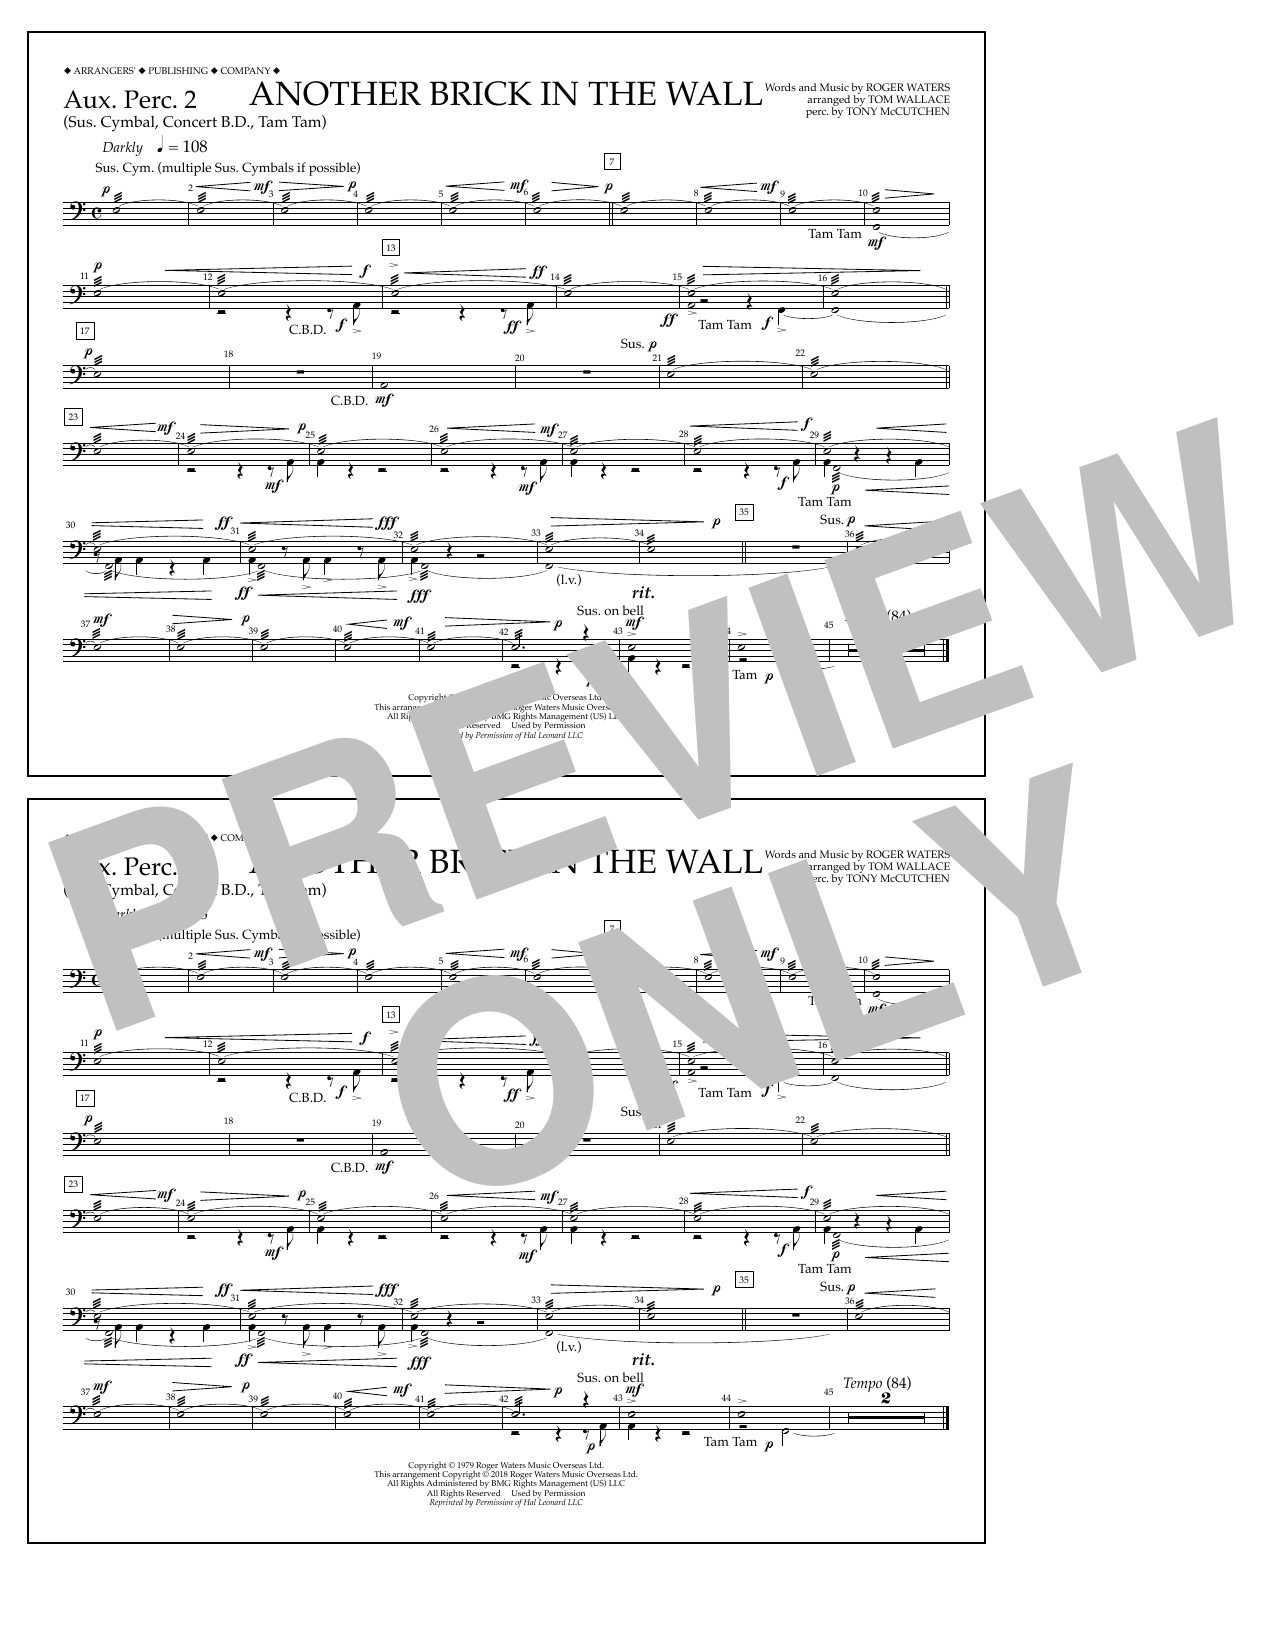 Tom Wallace Another Brick in the Wall - Aux. Perc. 2 sheet music notes and chords. Download Printable PDF.